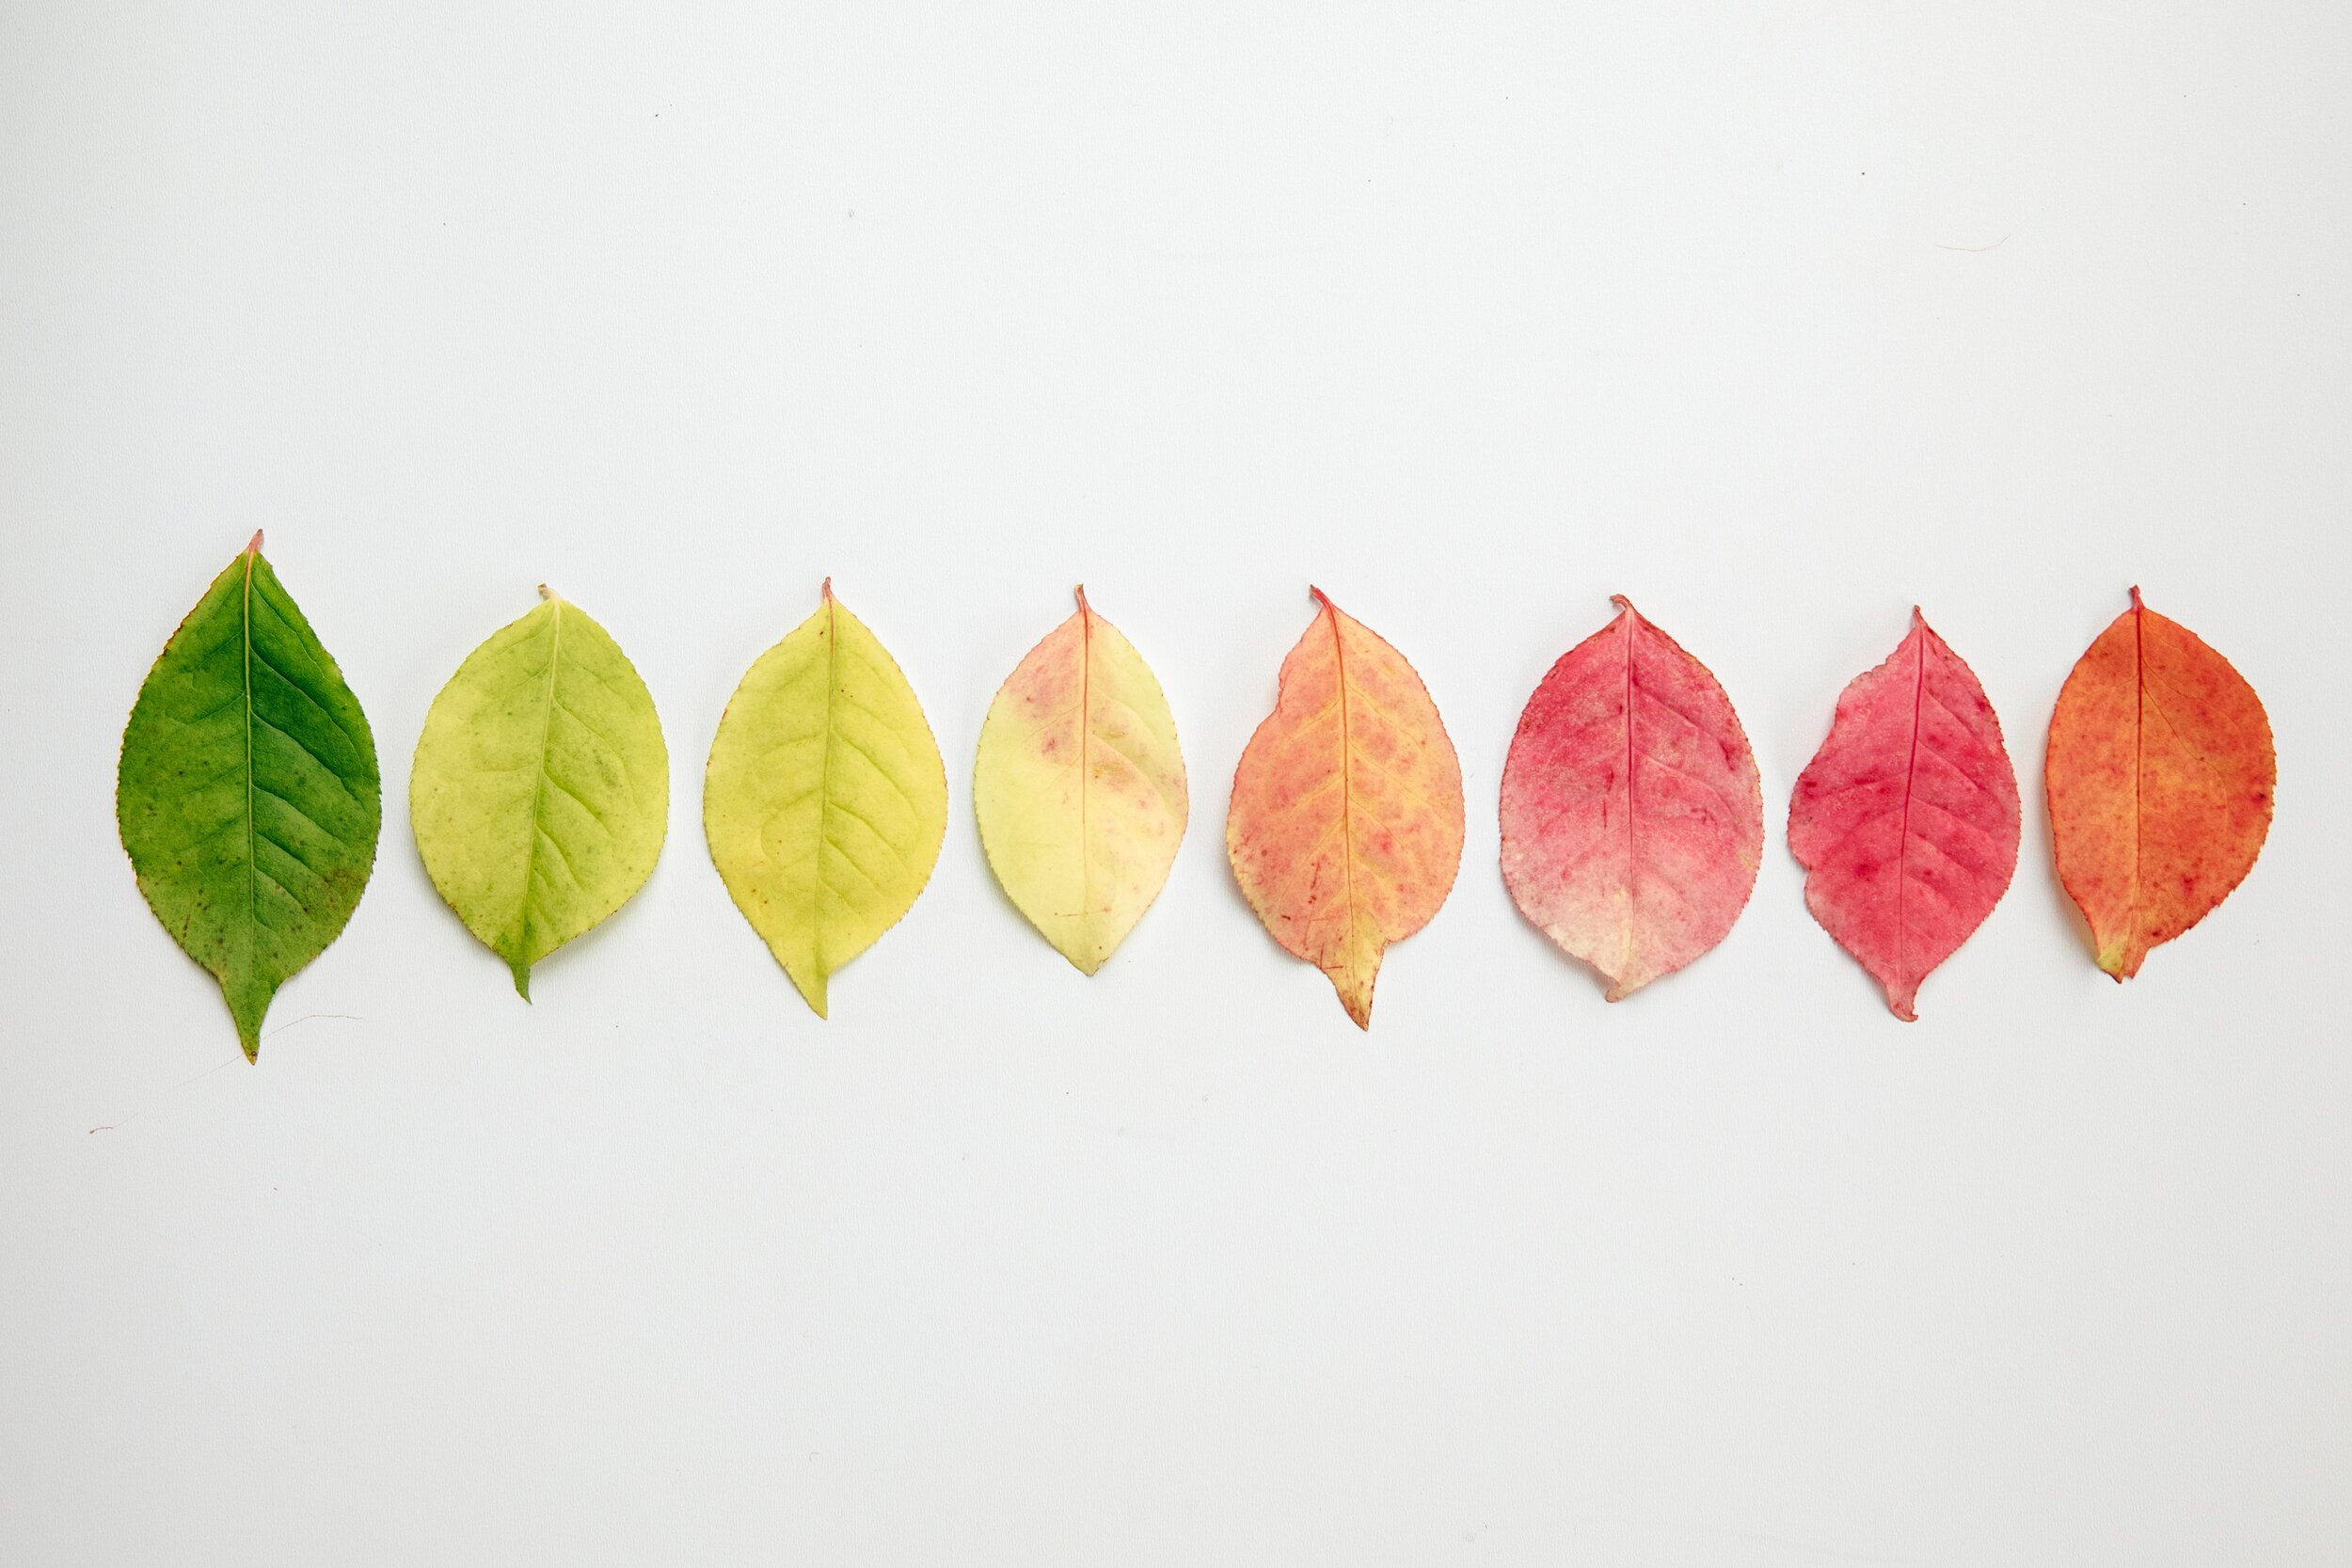 flat-lay-of-autumn-leaves-changing-color.jpg